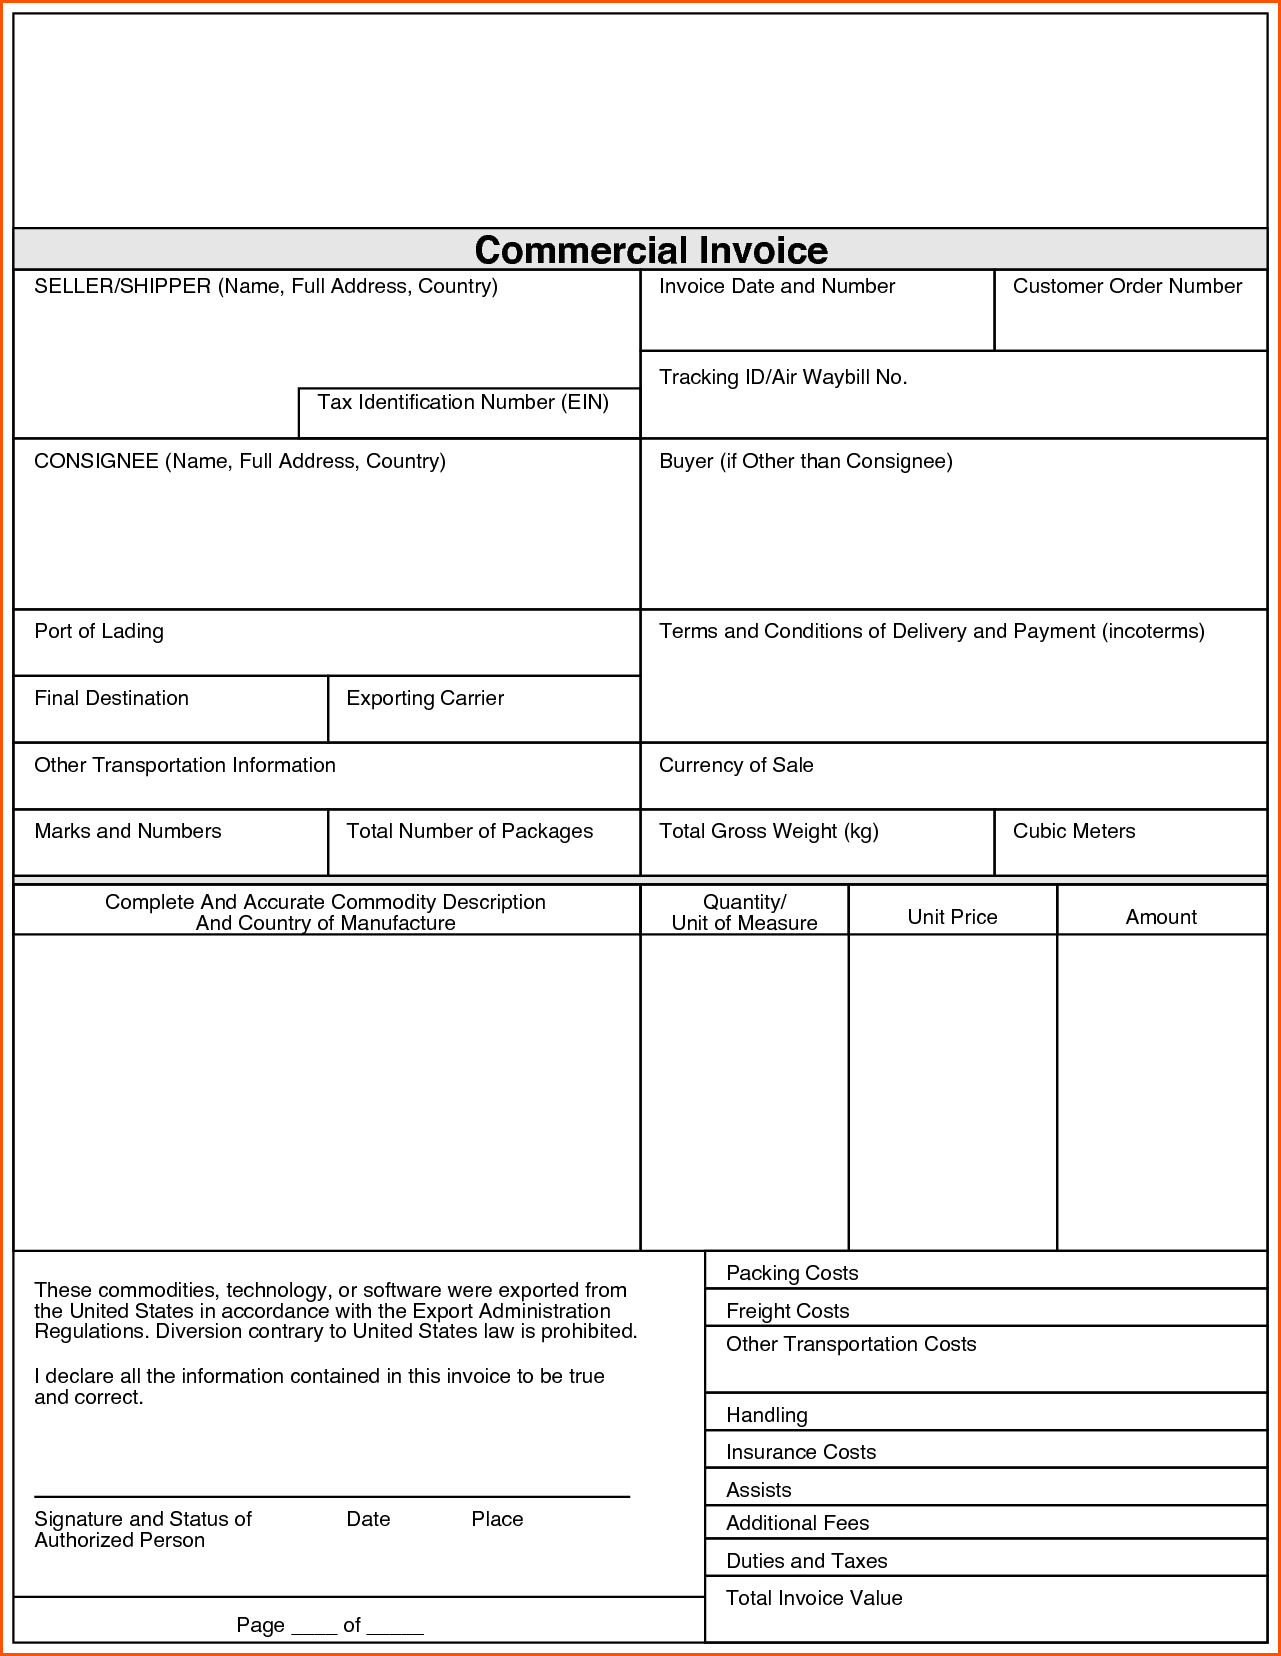 ups commercial invoice pdf